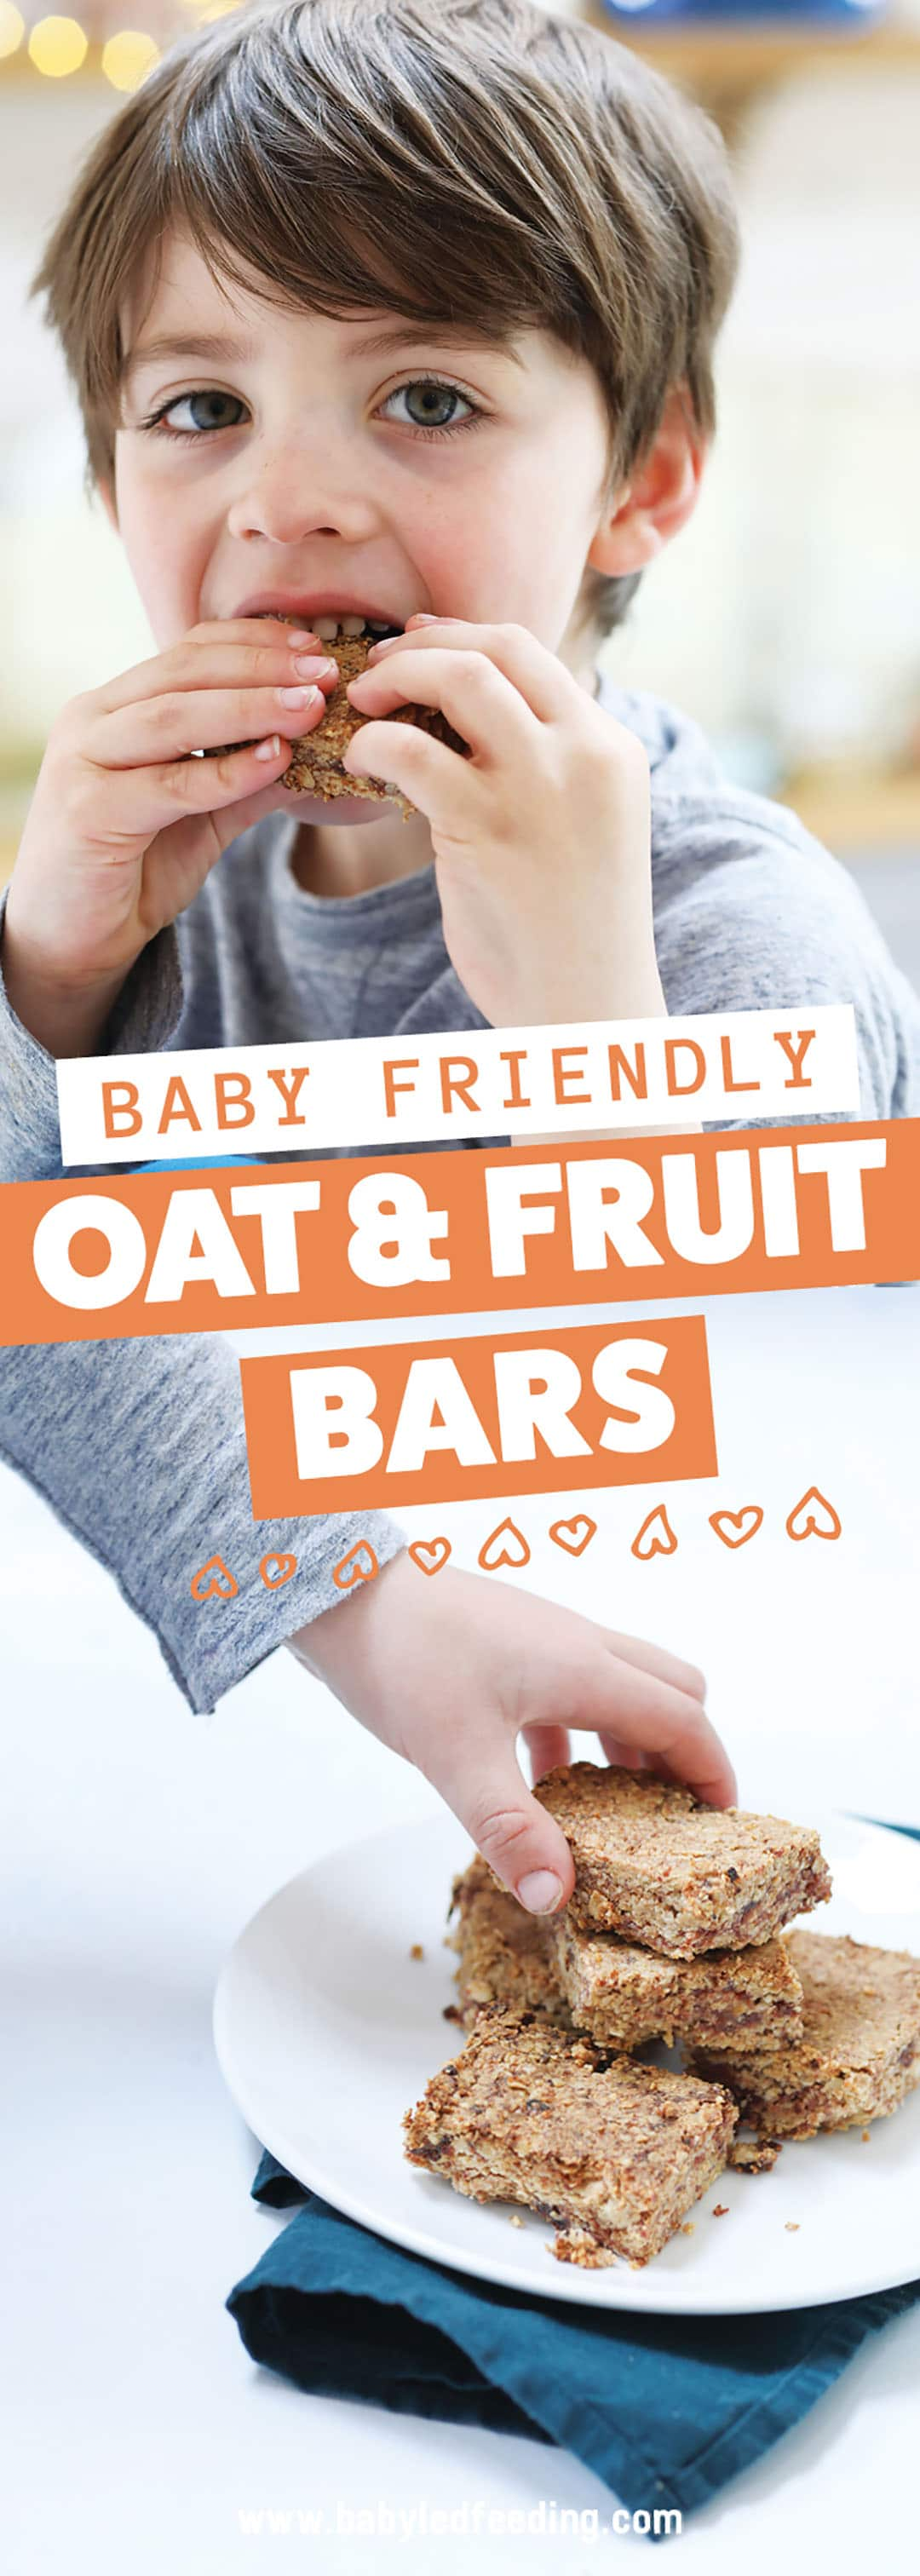 Super simple healthy snack bars for baby led weaning and kids. These easy oat bars have only 7 simple easy to find ingredients you probably already have in your pantry. Make ahead and snack all week! #babyledweaning #oatbars #healthysnacks #refinedsugarfree